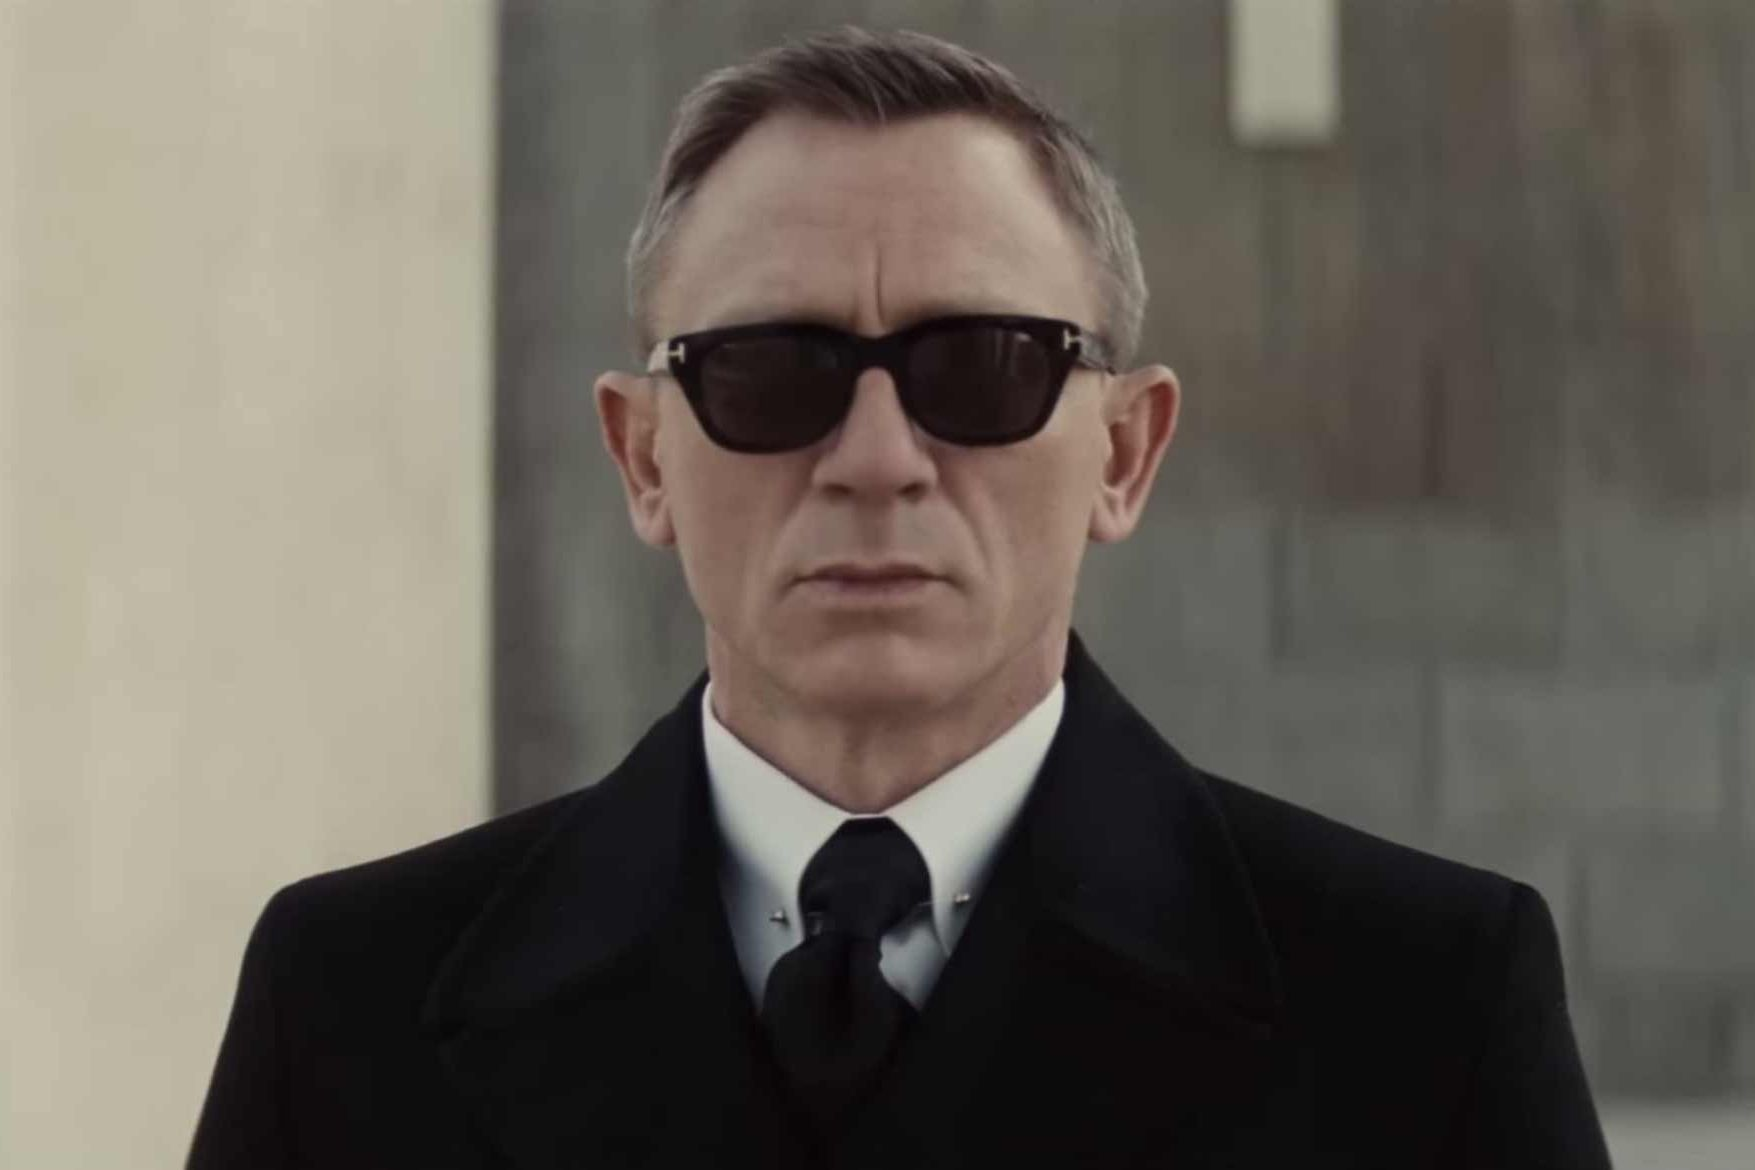 james bond�s spectre sunglasses are super slick and